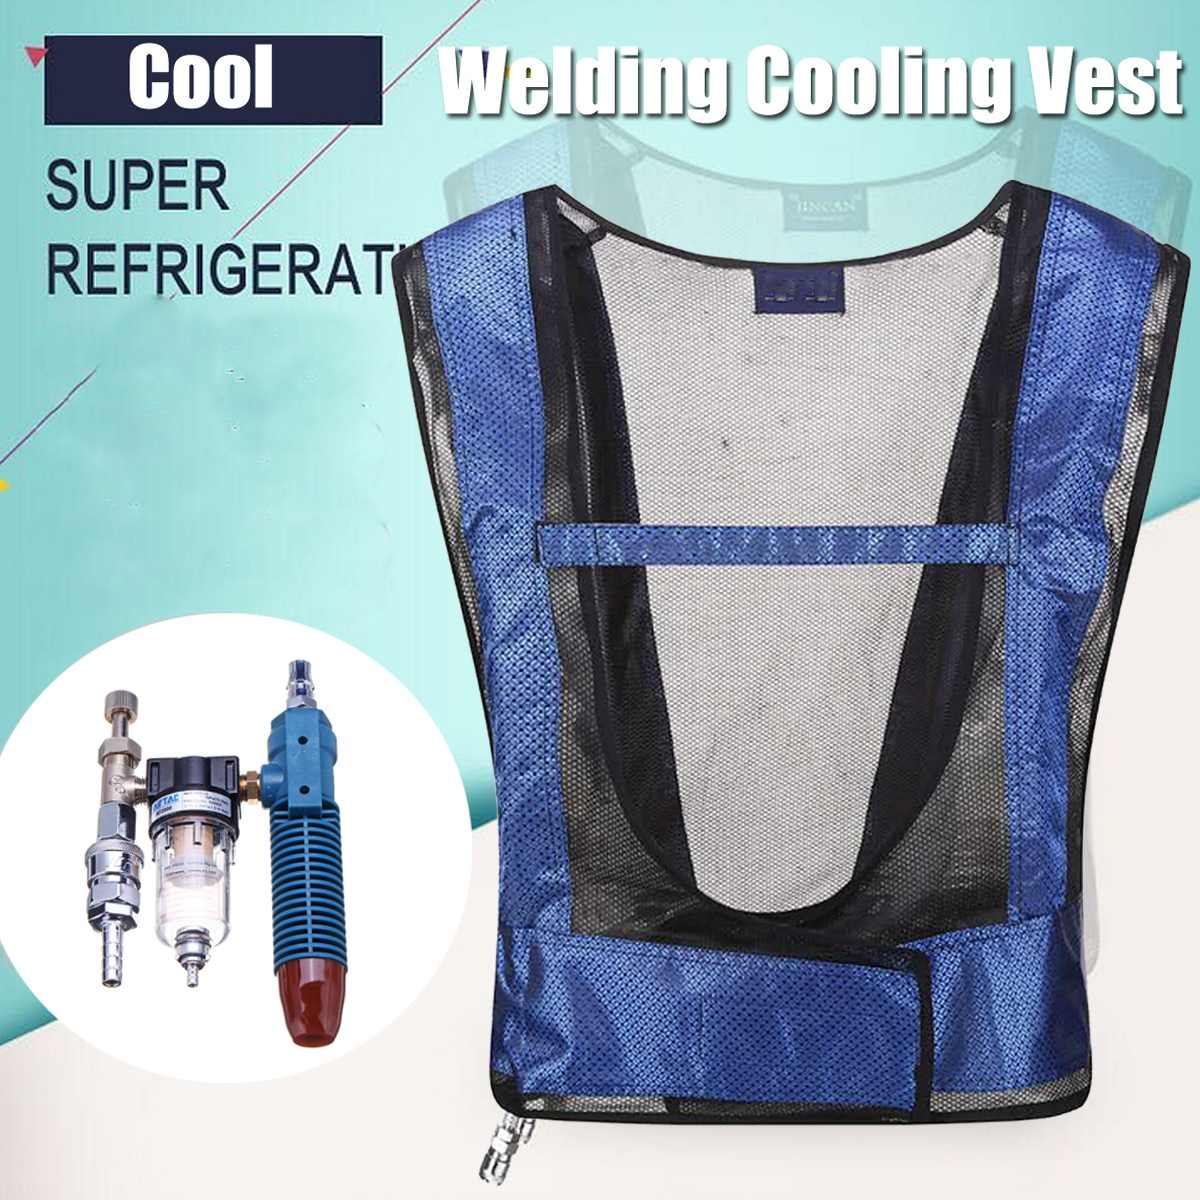 US $40 84 43% OFF|Air Conditioner Waistcoat Compressed Air Cooling Vest  Forging Vest Vortex Tube Welding Steel Cooling Suit-in Safety Clothing from